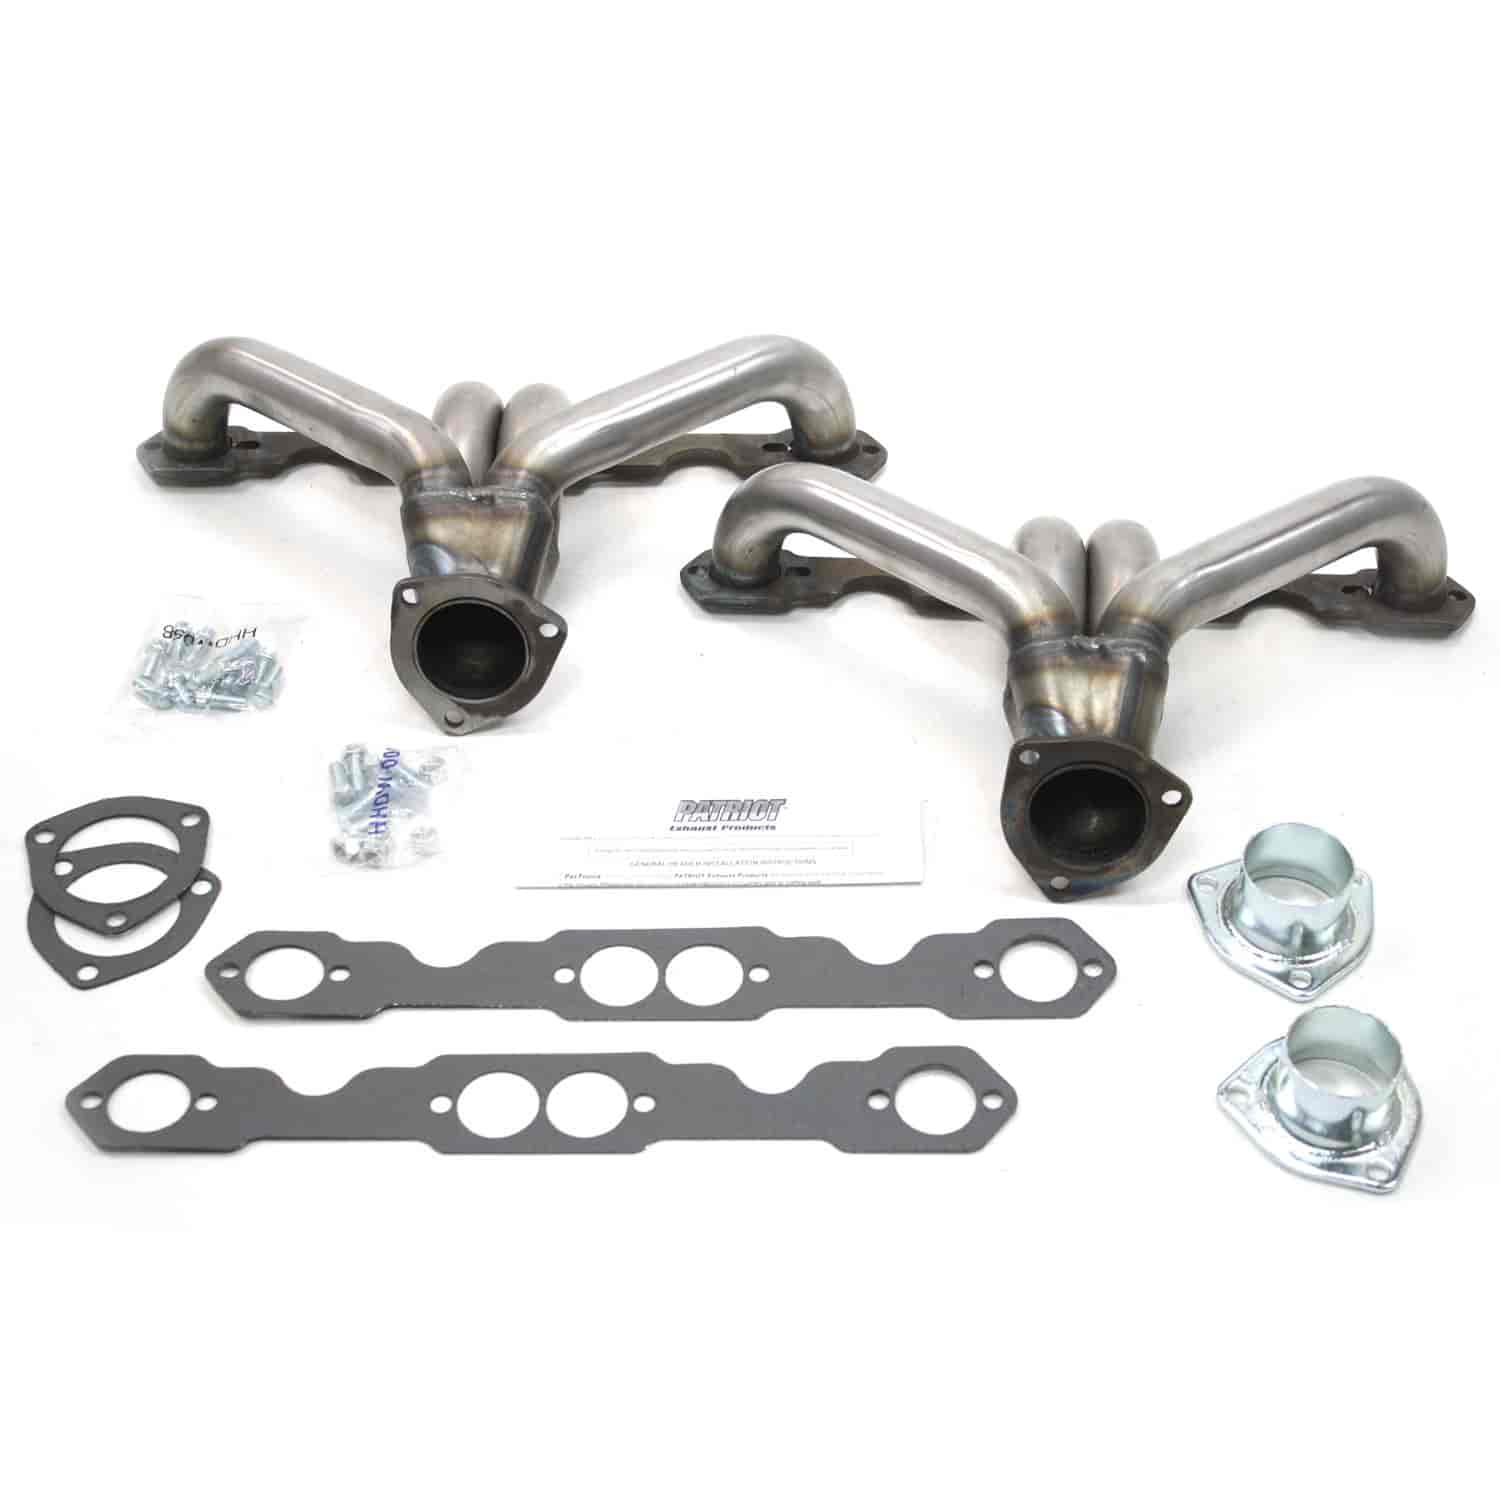 Patriot Exhaust H8037 - Patriot Exhaust Tight Tuck Headers